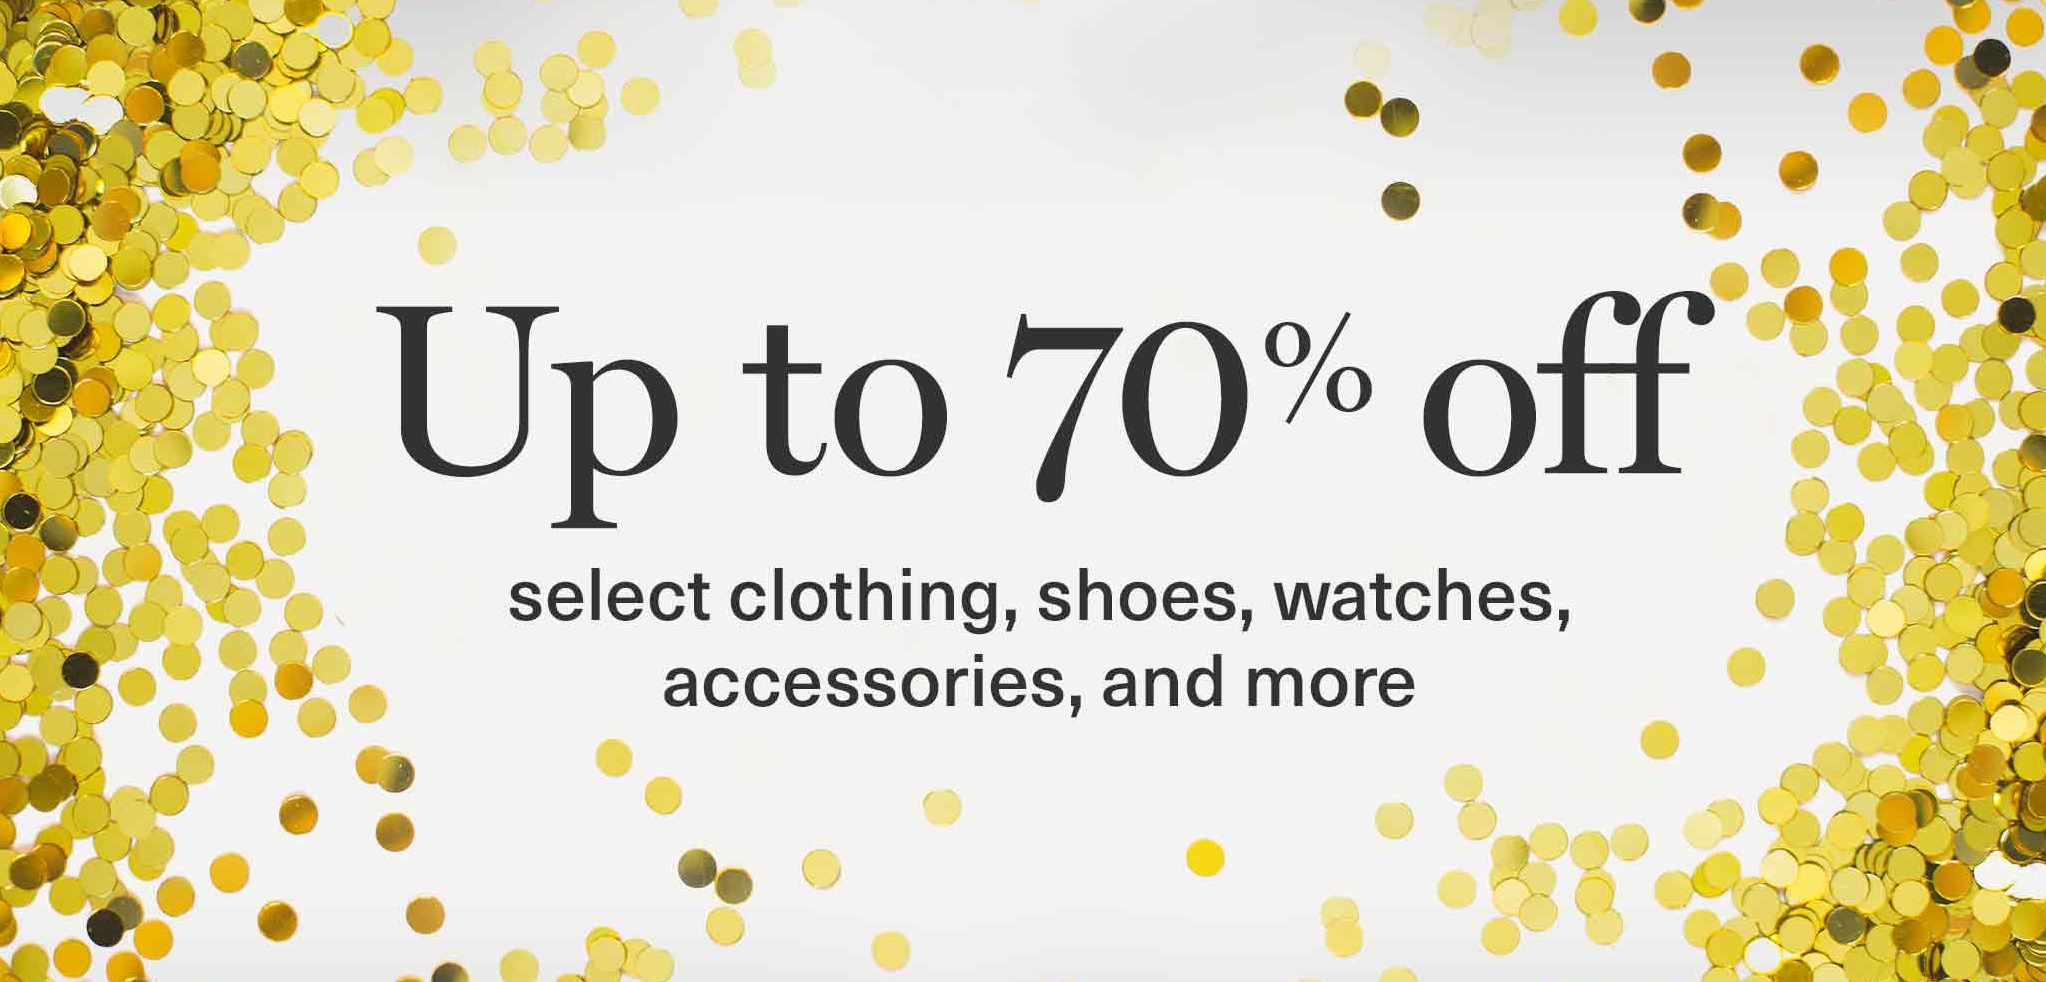 Celebrate Boxing Week: Up to 70% off select clothing, shoes, watches, accessories and more